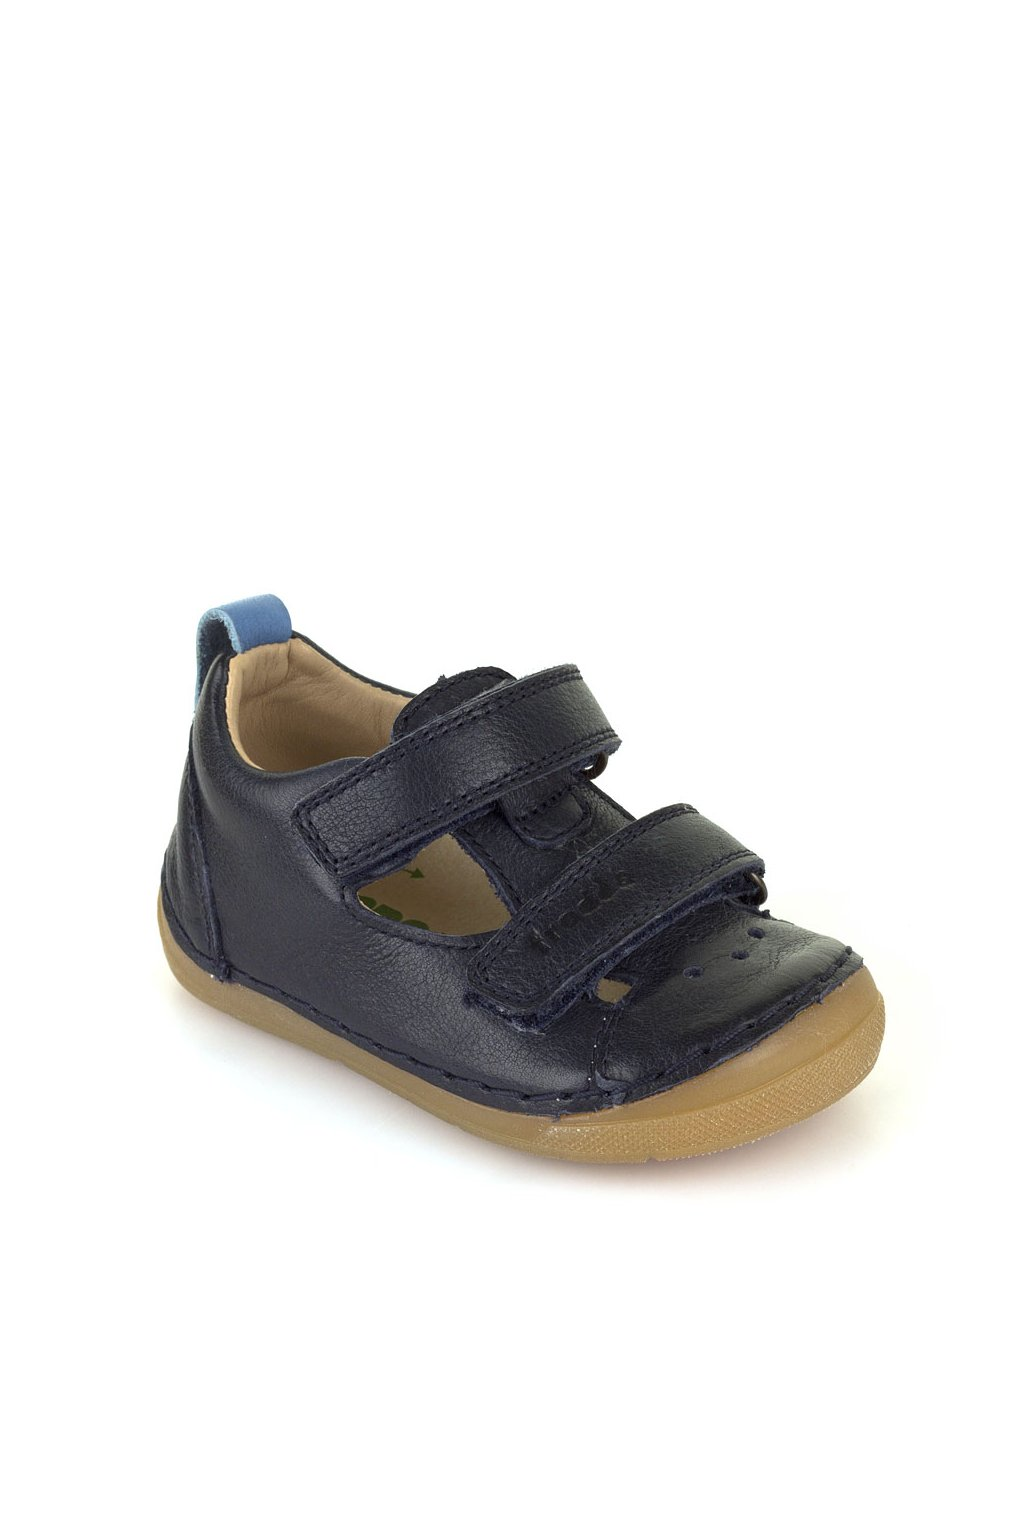 Froddo Sandals Blue